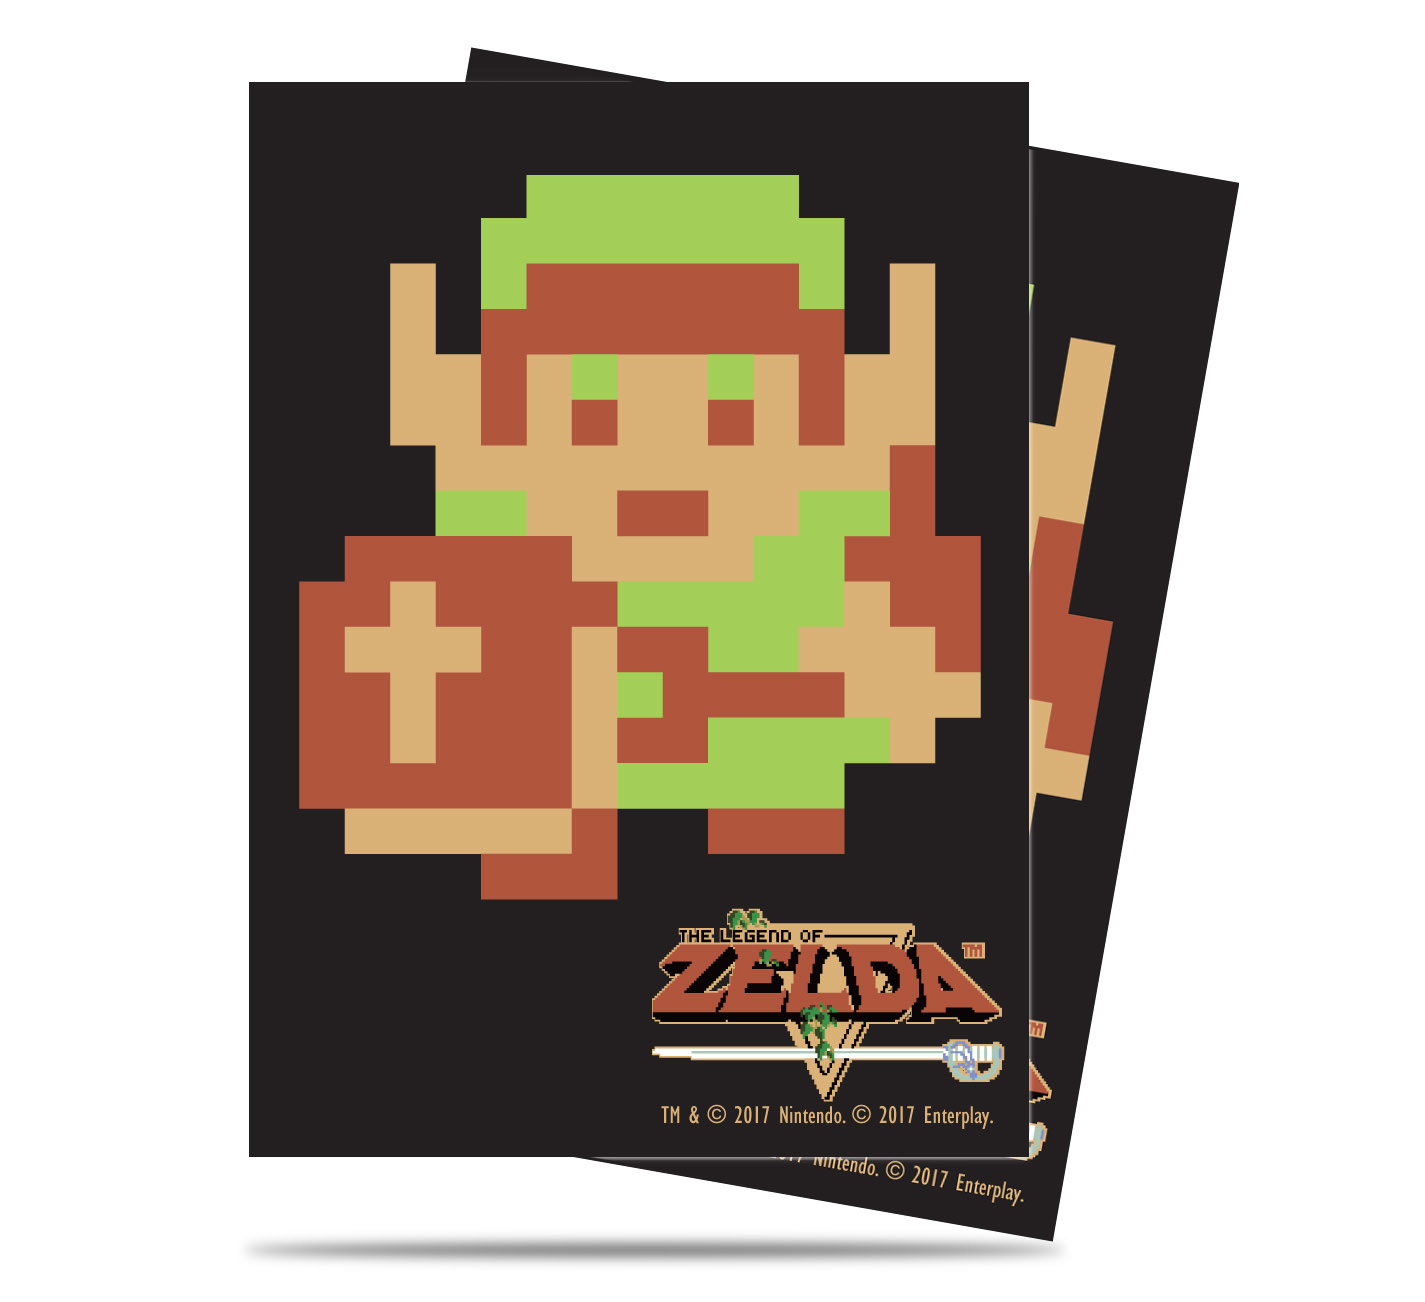 ultra-pro-legend-of-zelda-85222.jpg